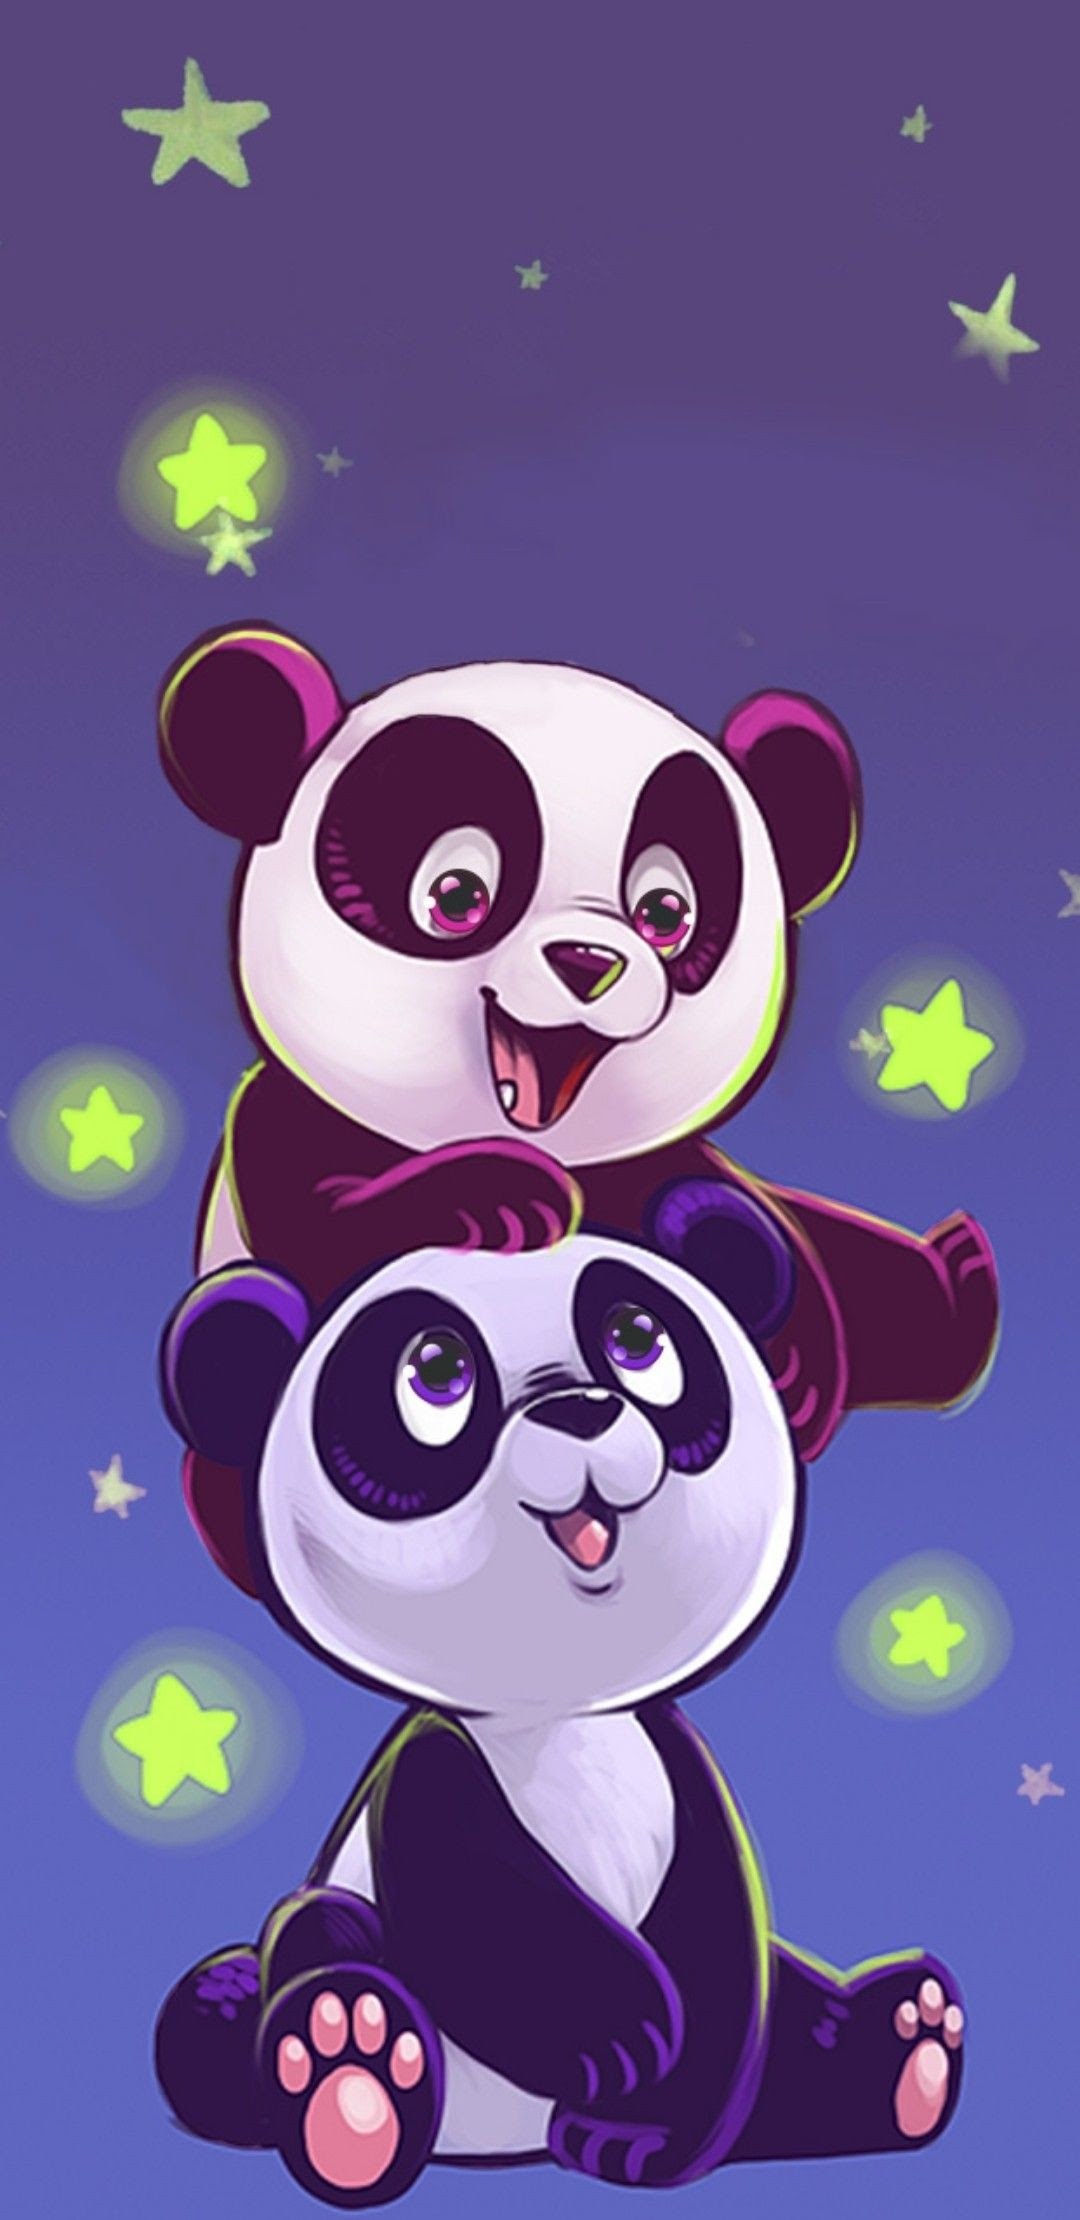 Anime Panda Wallpaper : anime, panda, wallpaper, Anime, Wallpaper, Kawaii, Panda, Tachi